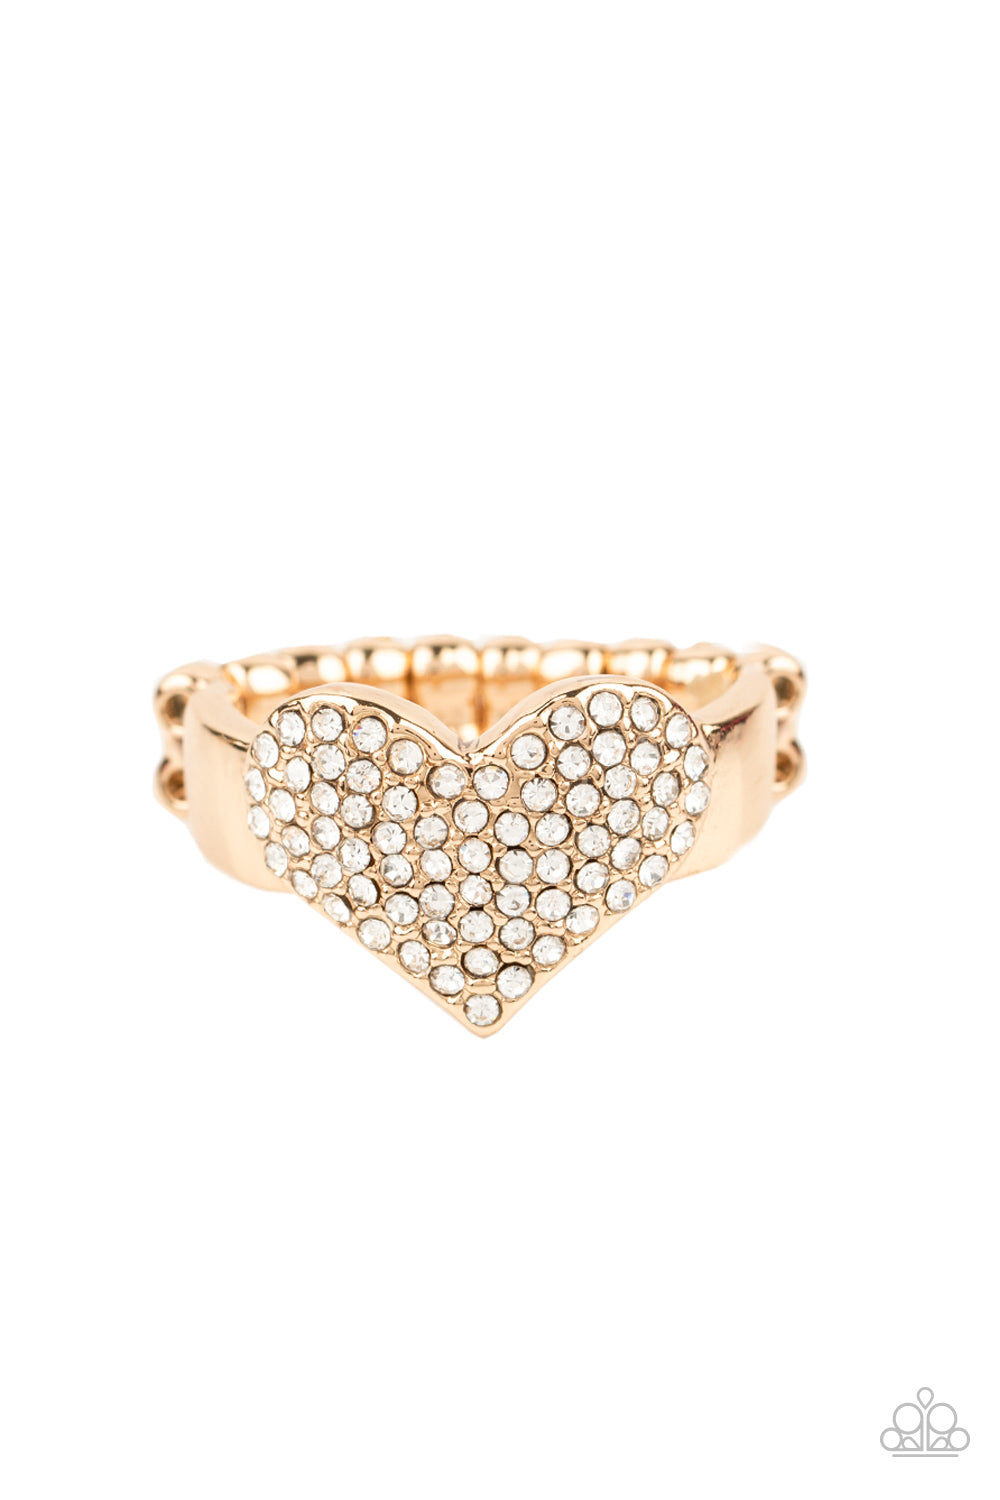 heart-of-bling-gold-p4re-gdxx-215xx